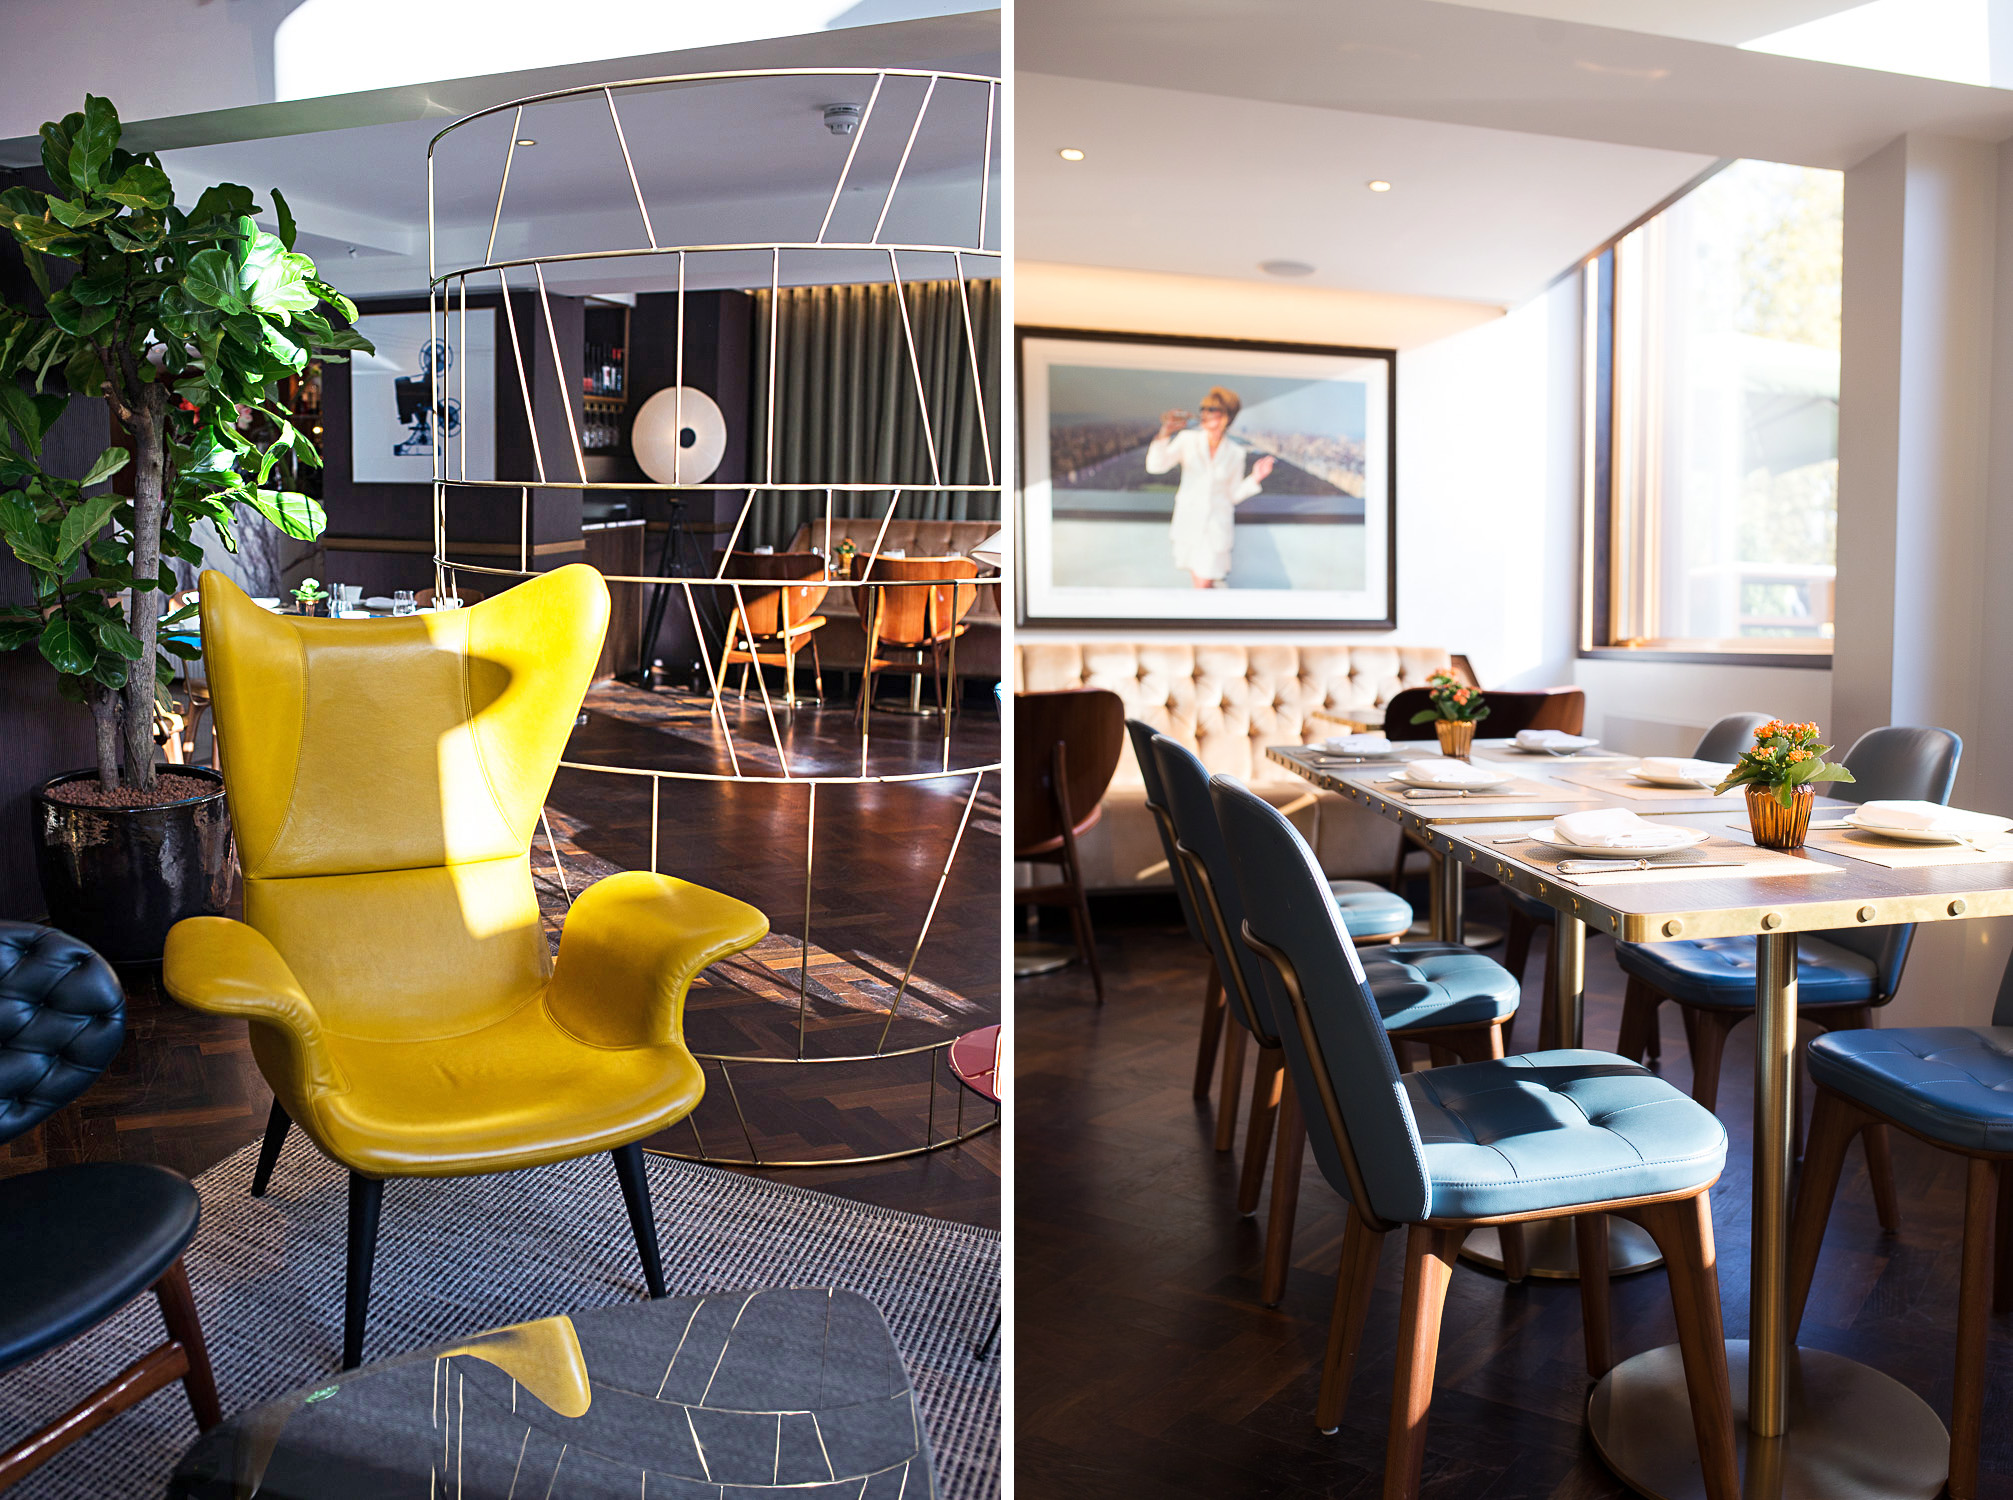 The Athenaeum - Five Star Luxury Hotel in Mayfair, London